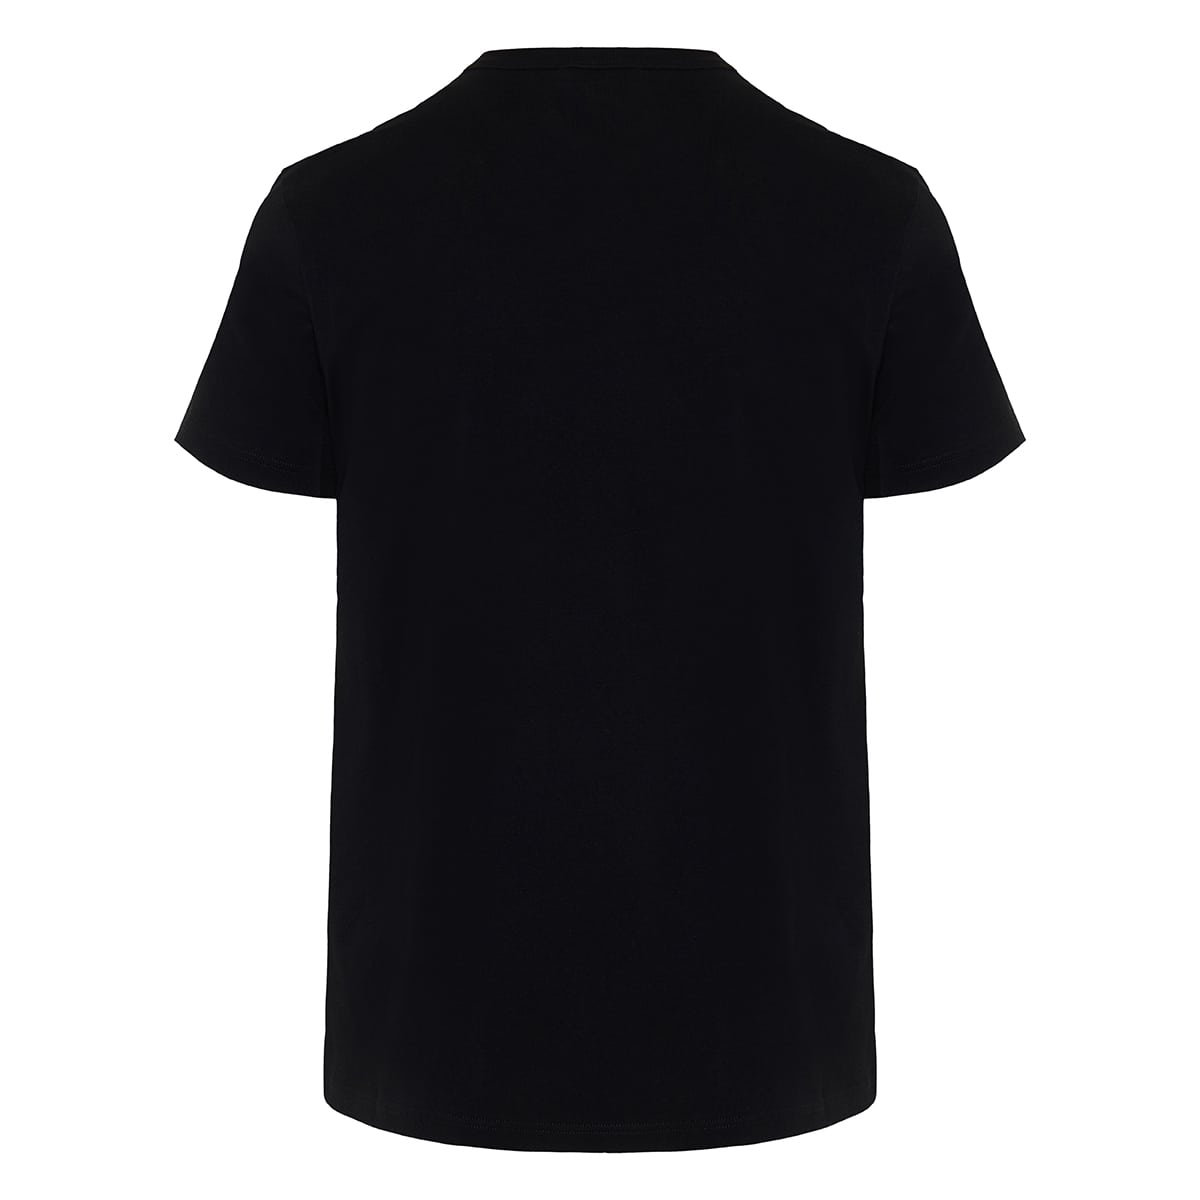 Skull-embroidery jersey t-shirt